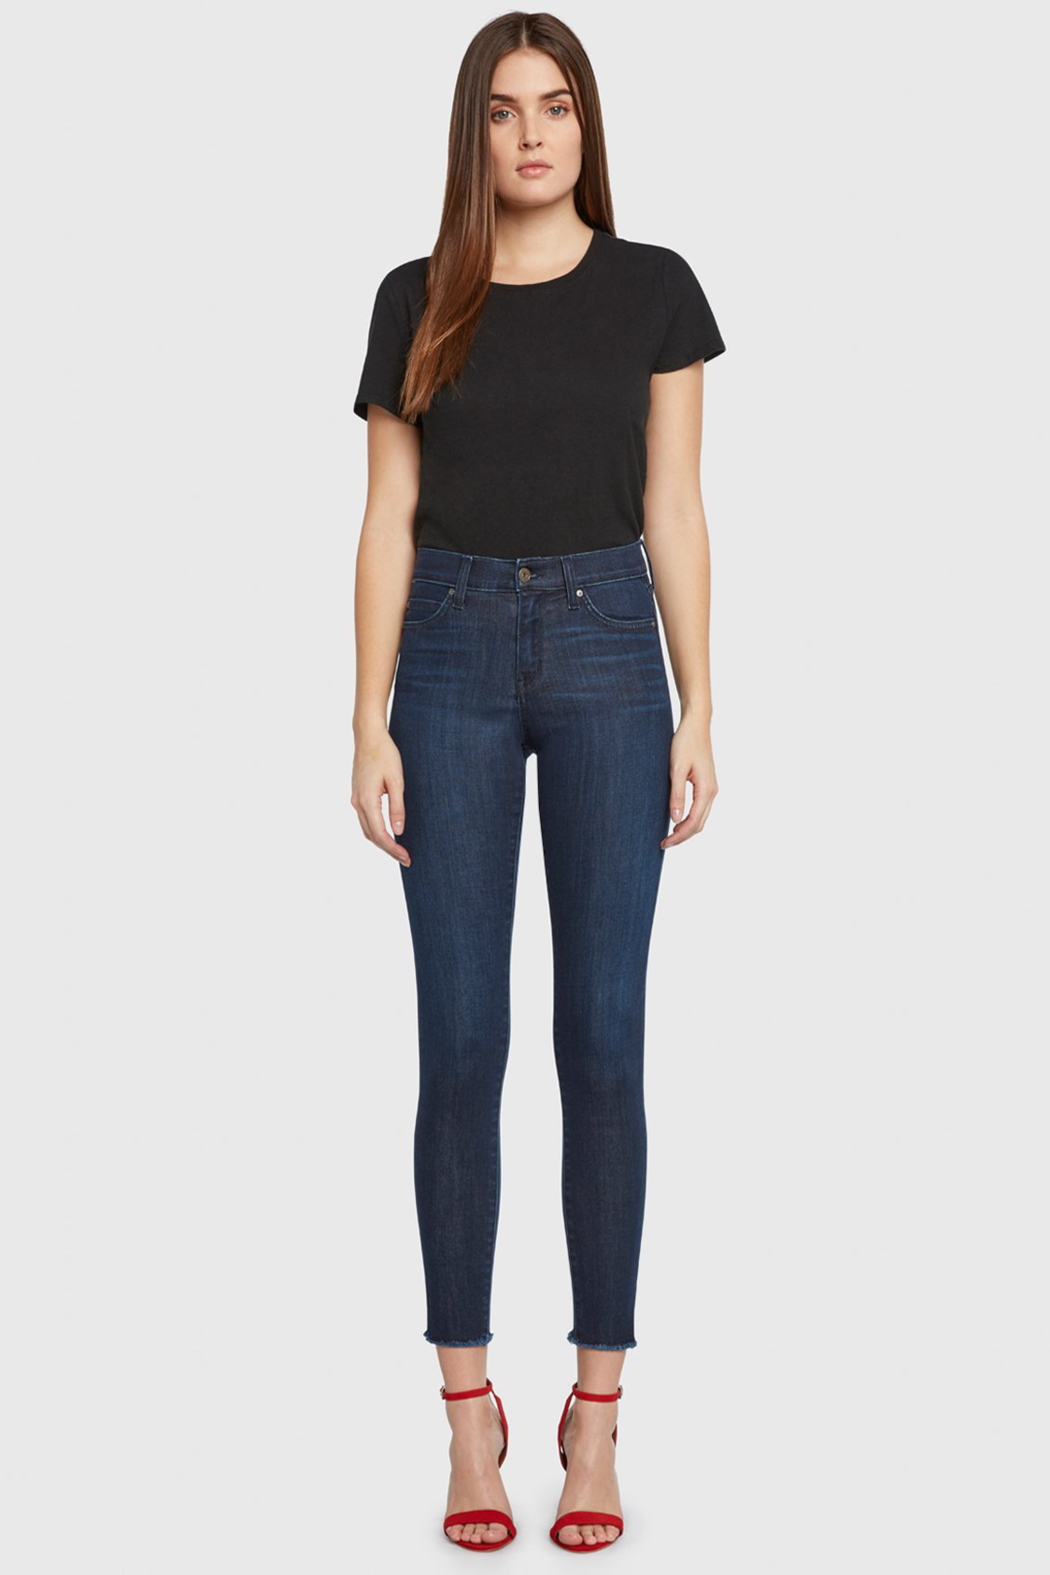 Principle Denim Principle Gem Skinny Jeans - Sweet Dreams - Front Full Image